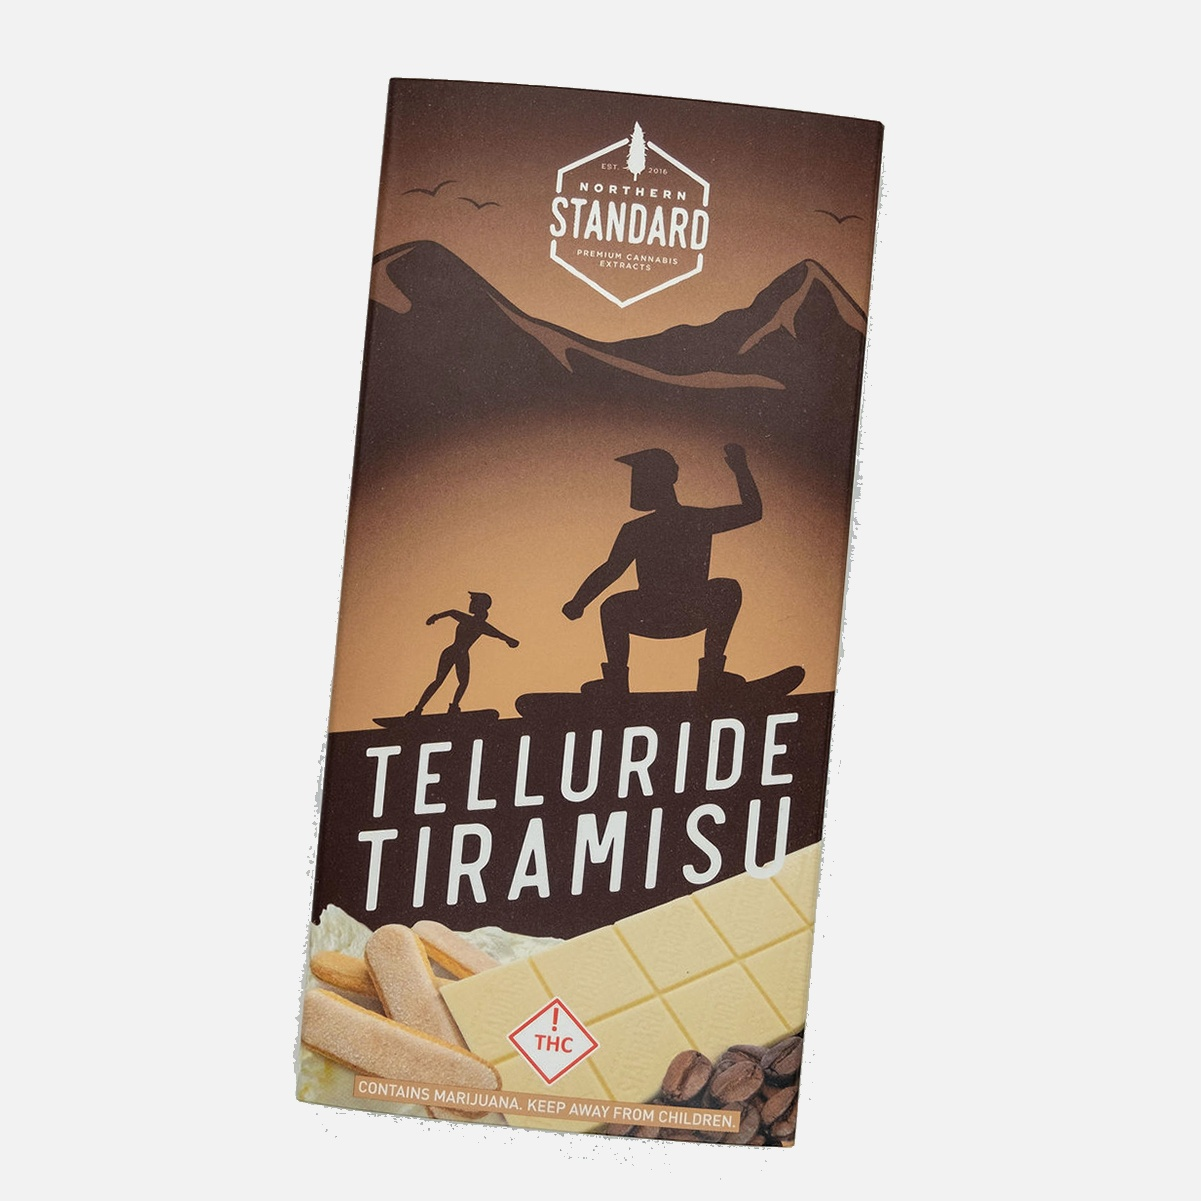 Telluride Tiramisu: THC Edible Chocolate Bar